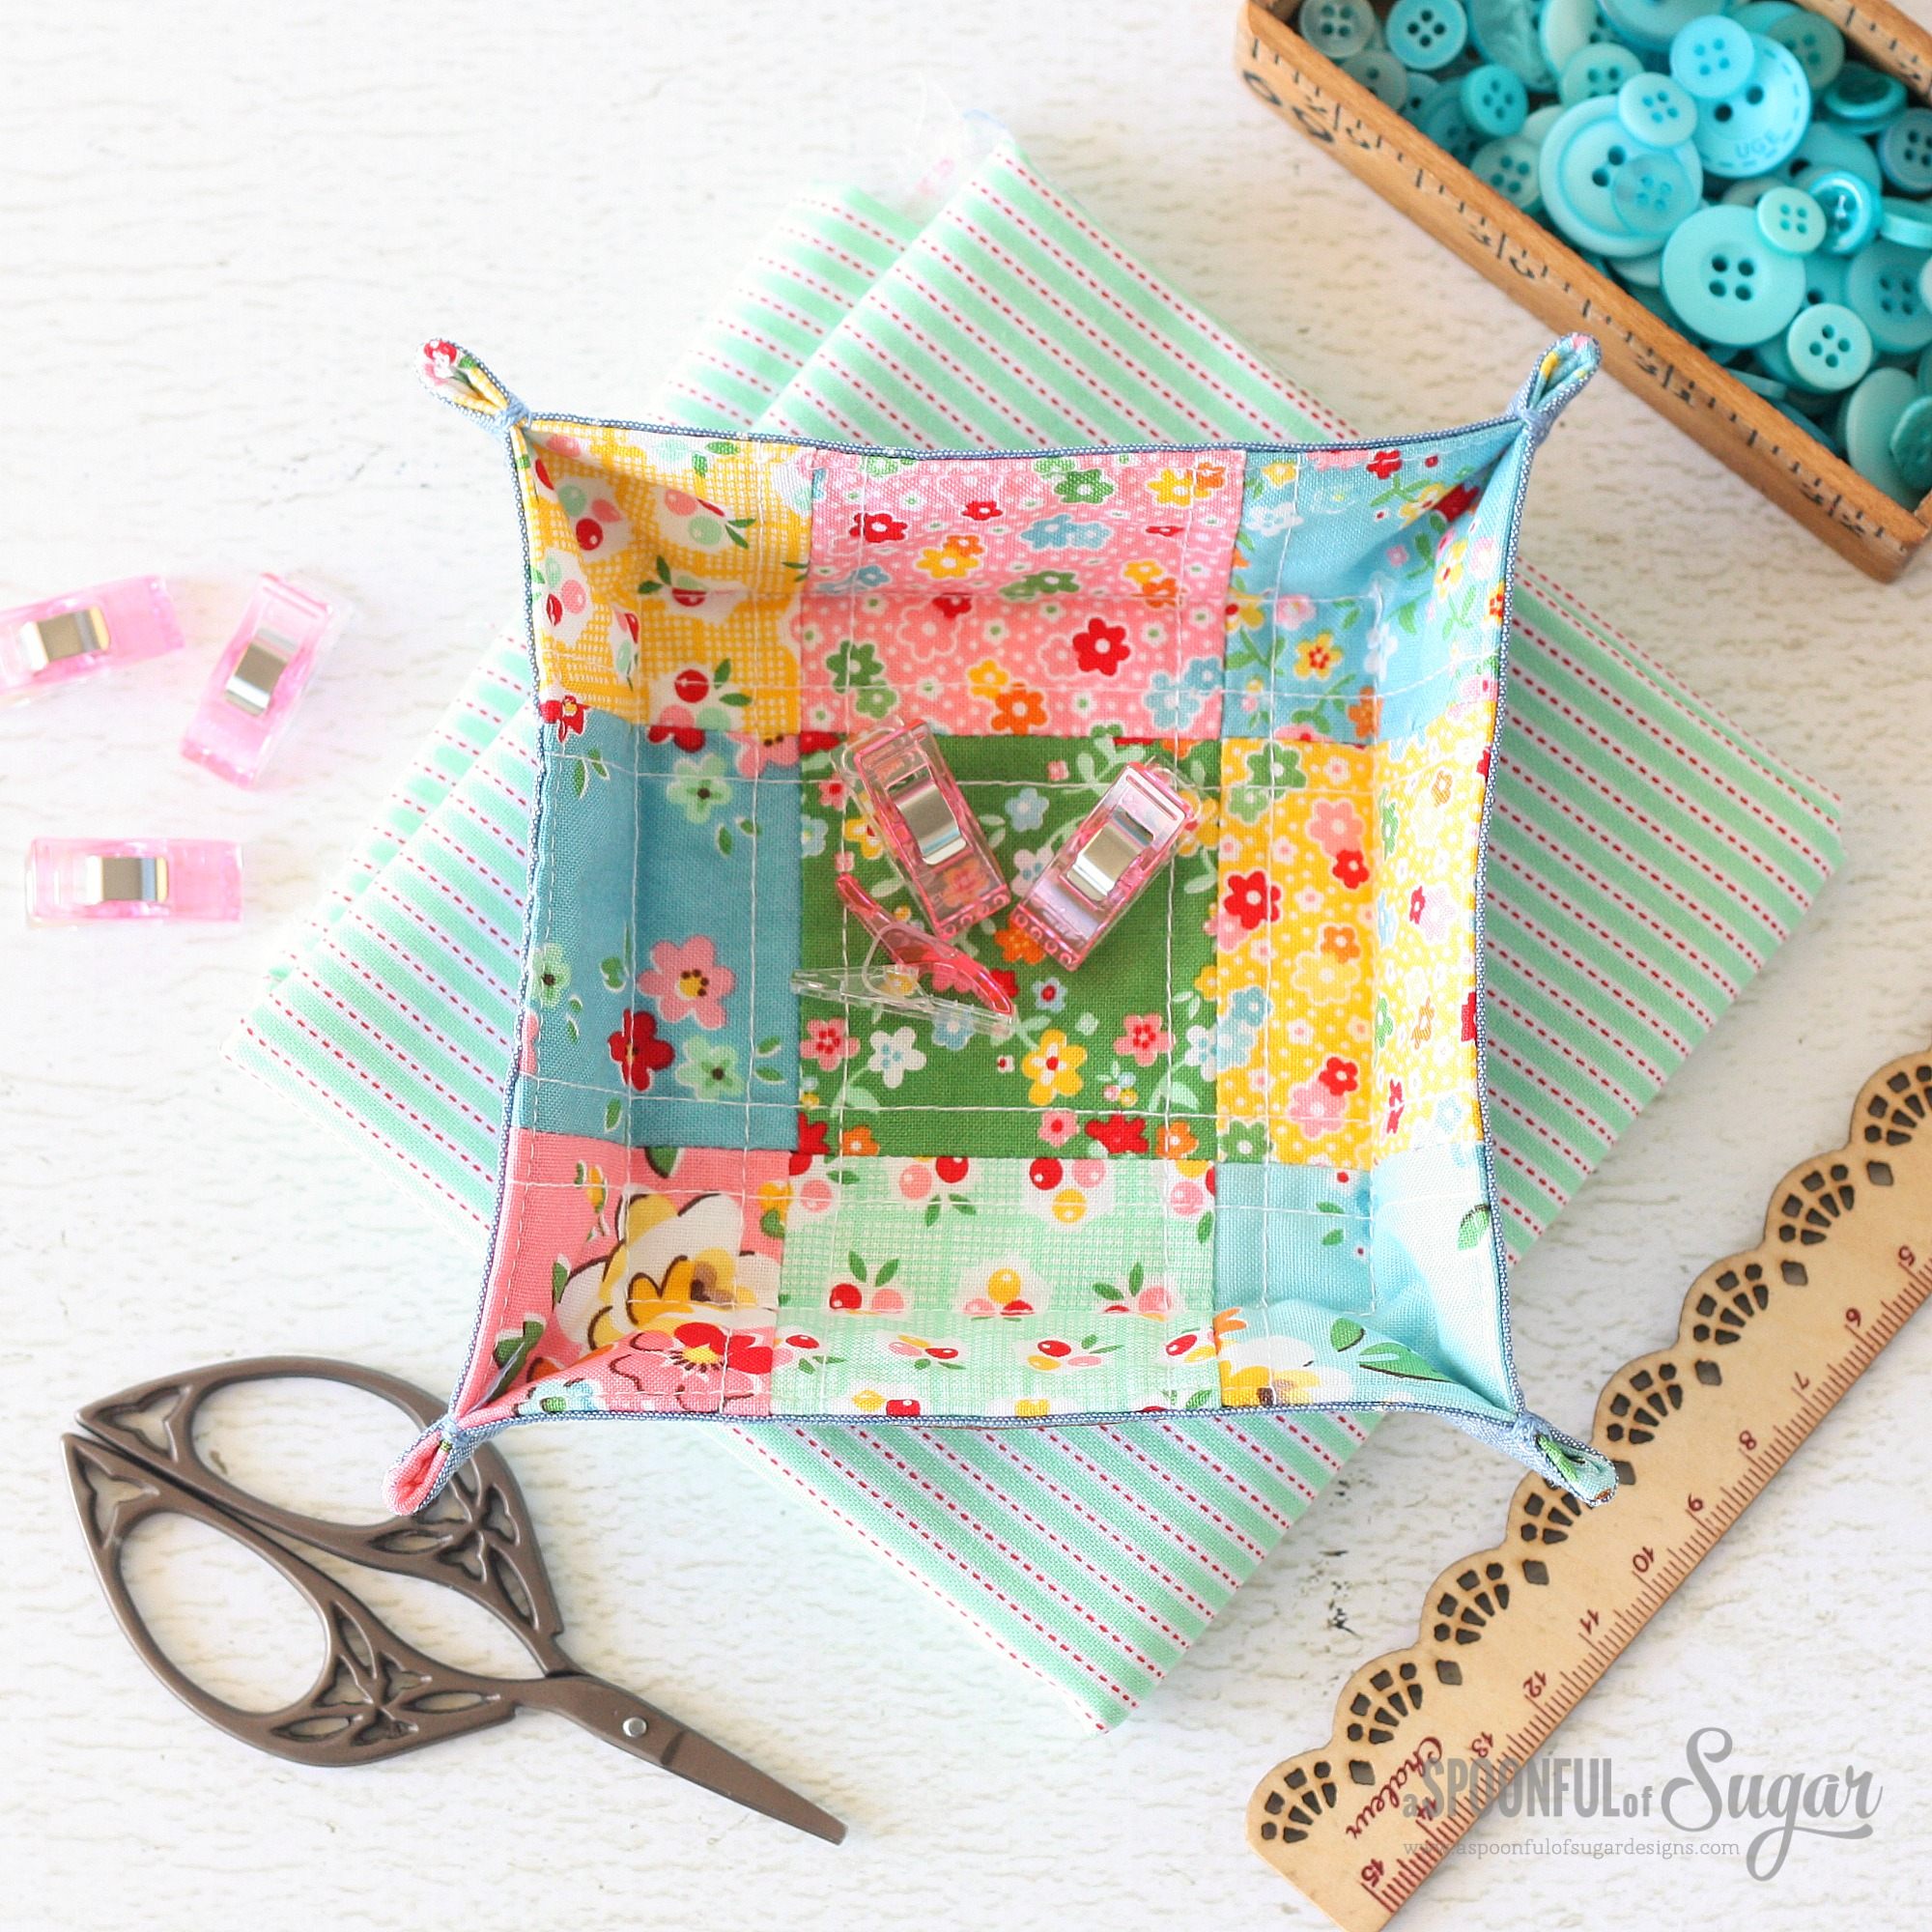 Patchwork Fabric Tray made using Backyard Roses fabric